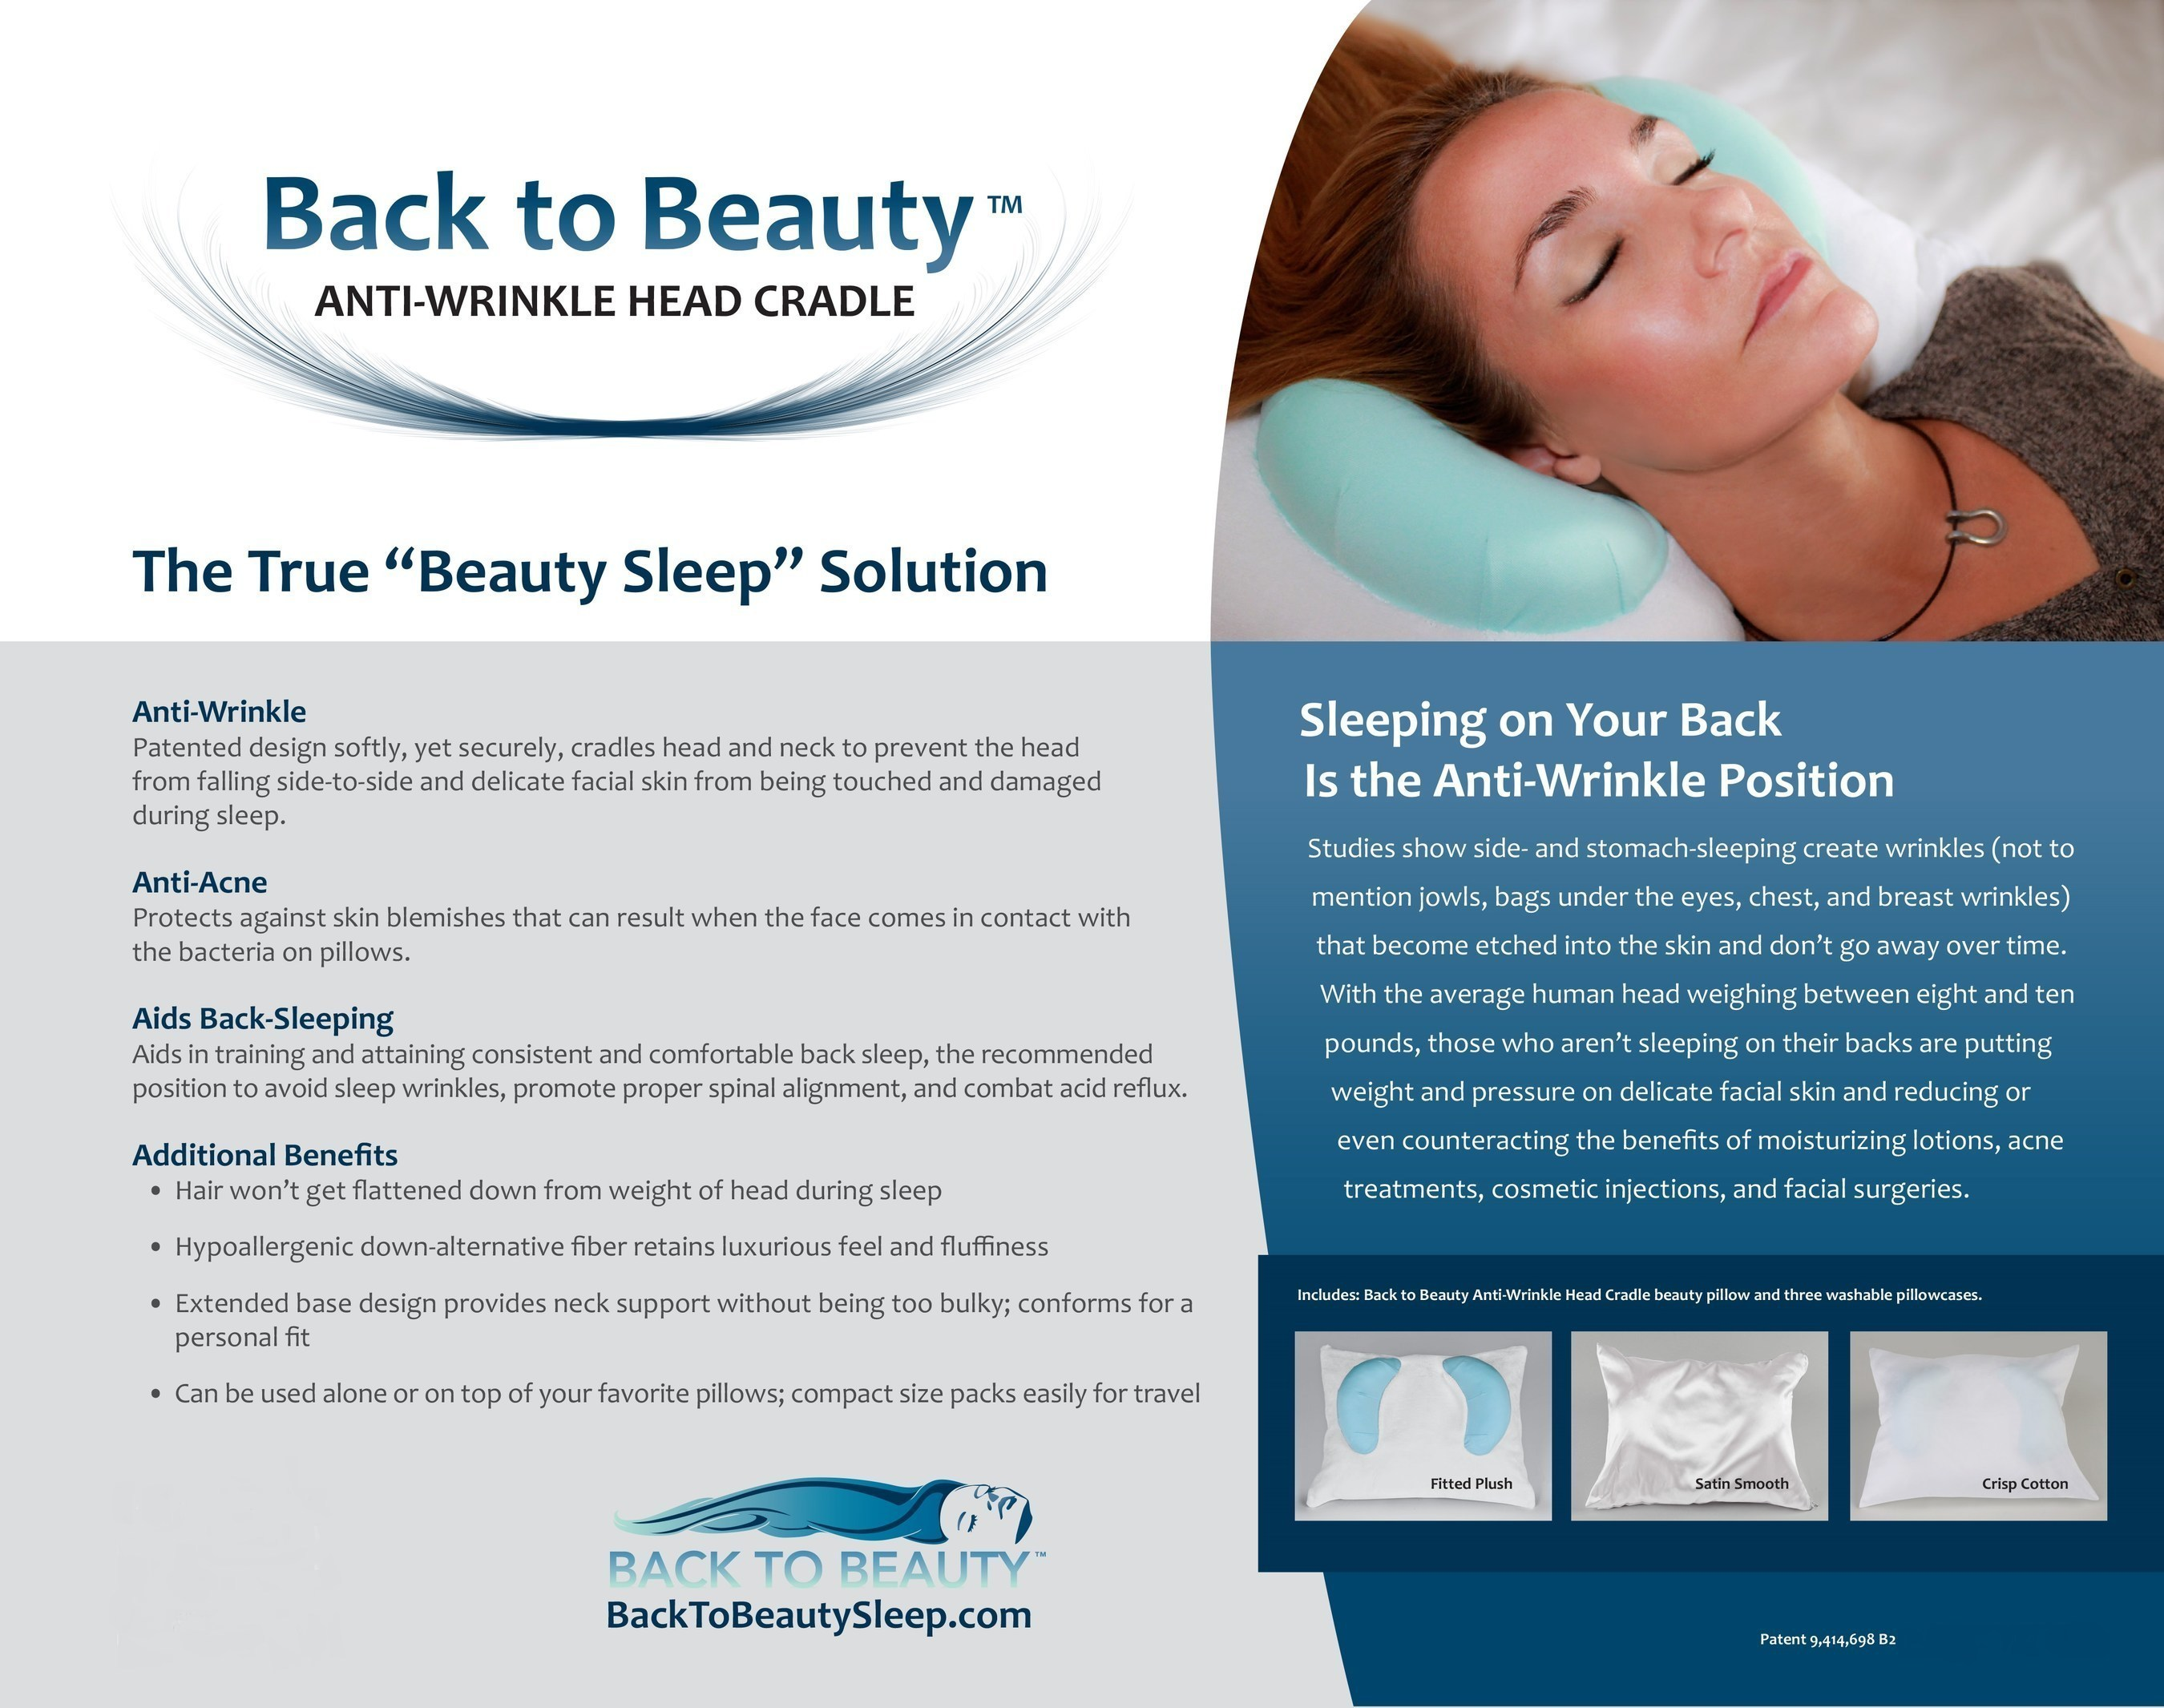 back to beauty anti wrinkle head cradle beauty pillow awarded patent